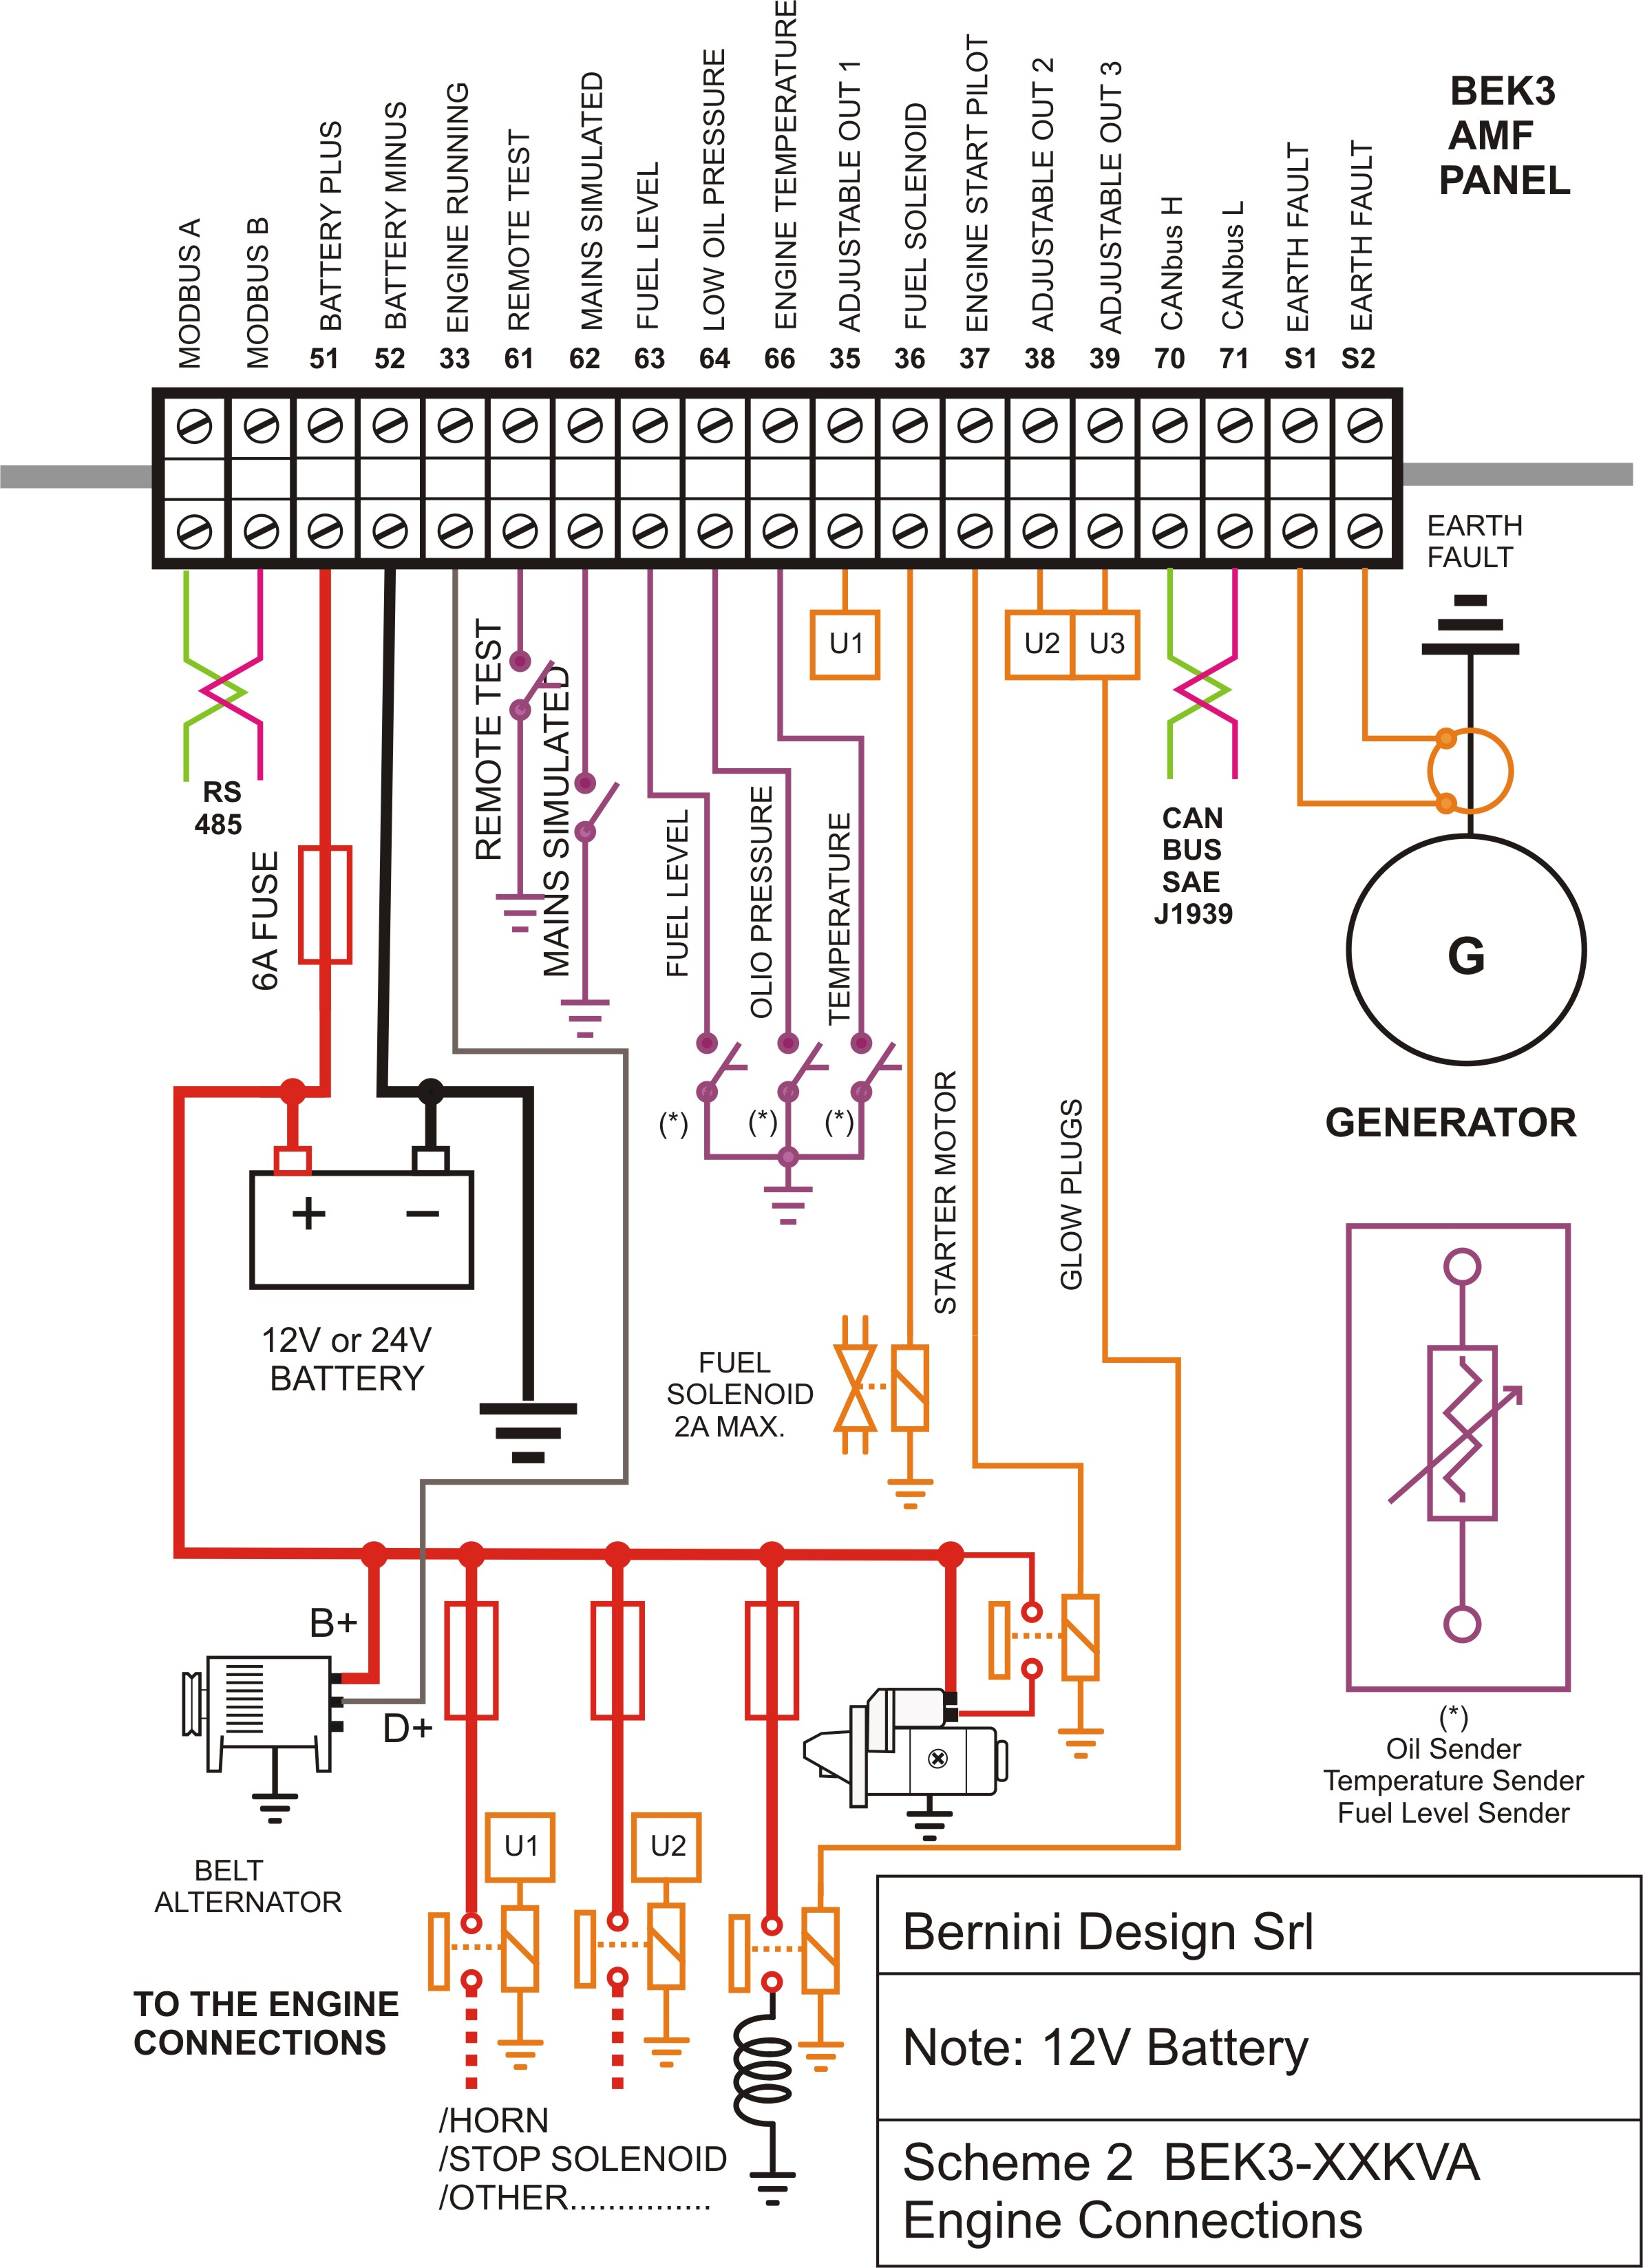 Diesel Generator Control Panel Wiring Diagram Engine Connections?resized665%2C9186ssld1 caterpillar generator schematic diagram efcaviation com Caterpillar SR4B Model Specification Sheet at fashall.co